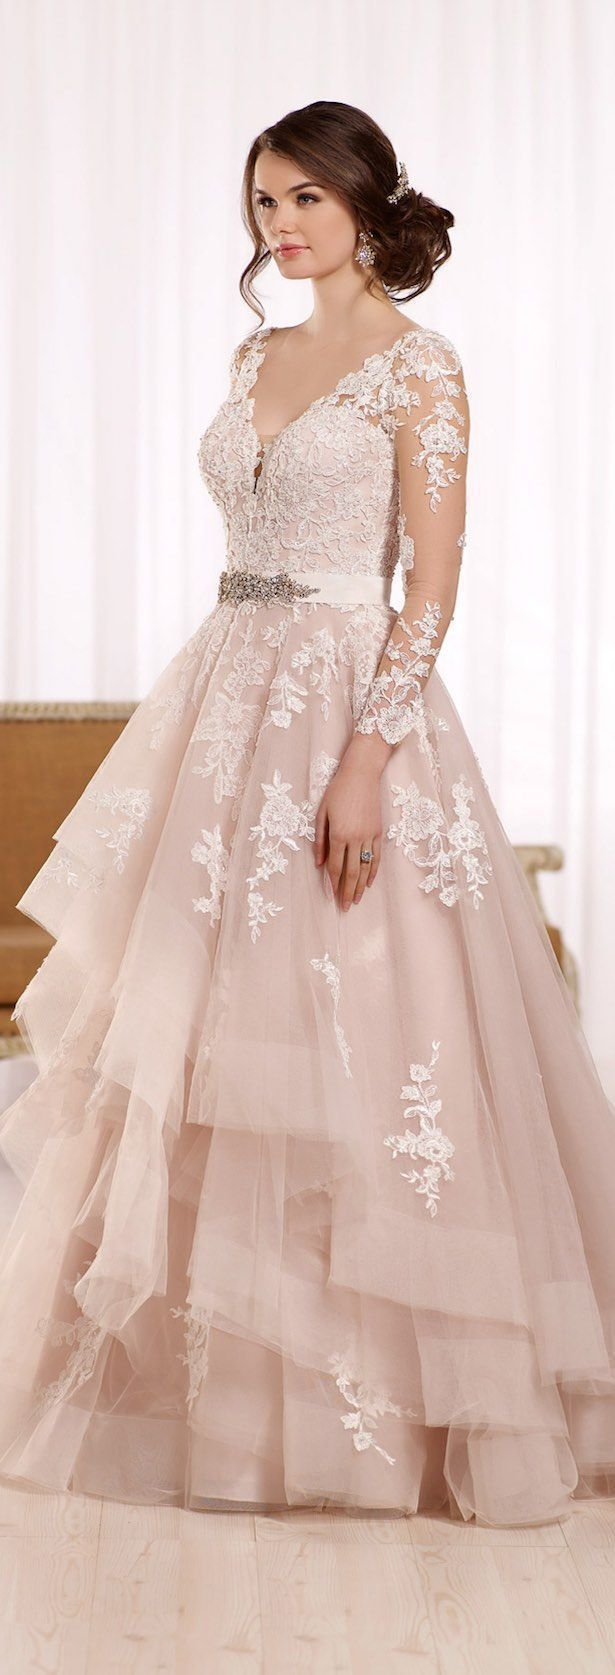 Pink lace wedding dress  What Makes a Perfect Summer Theme Wedding  Long wedding dresses